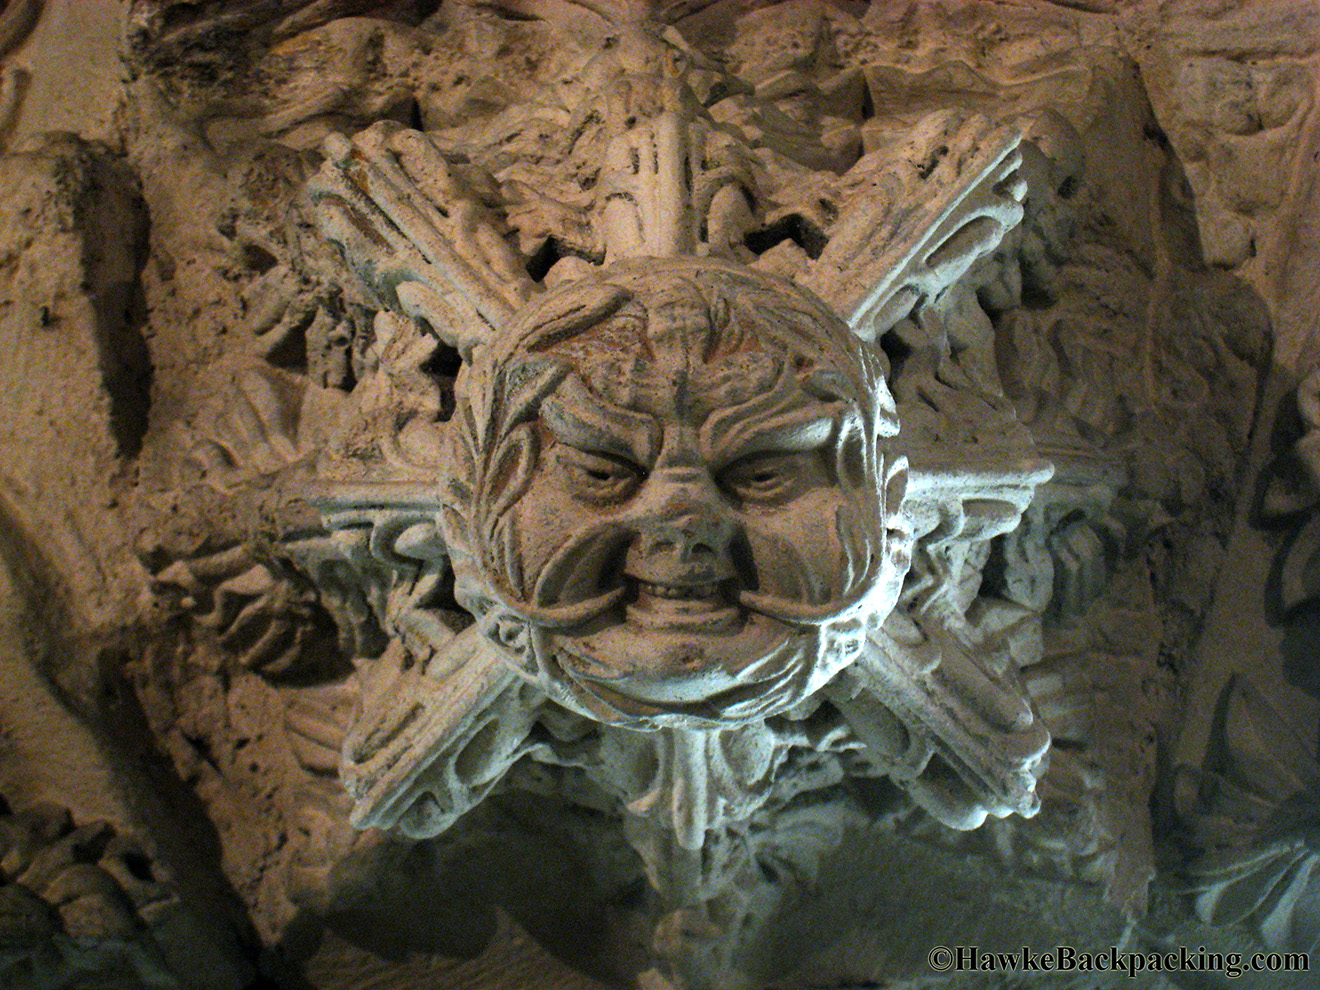 Interior Decorations Rosslyn Chapel Hawkebackpacking Com